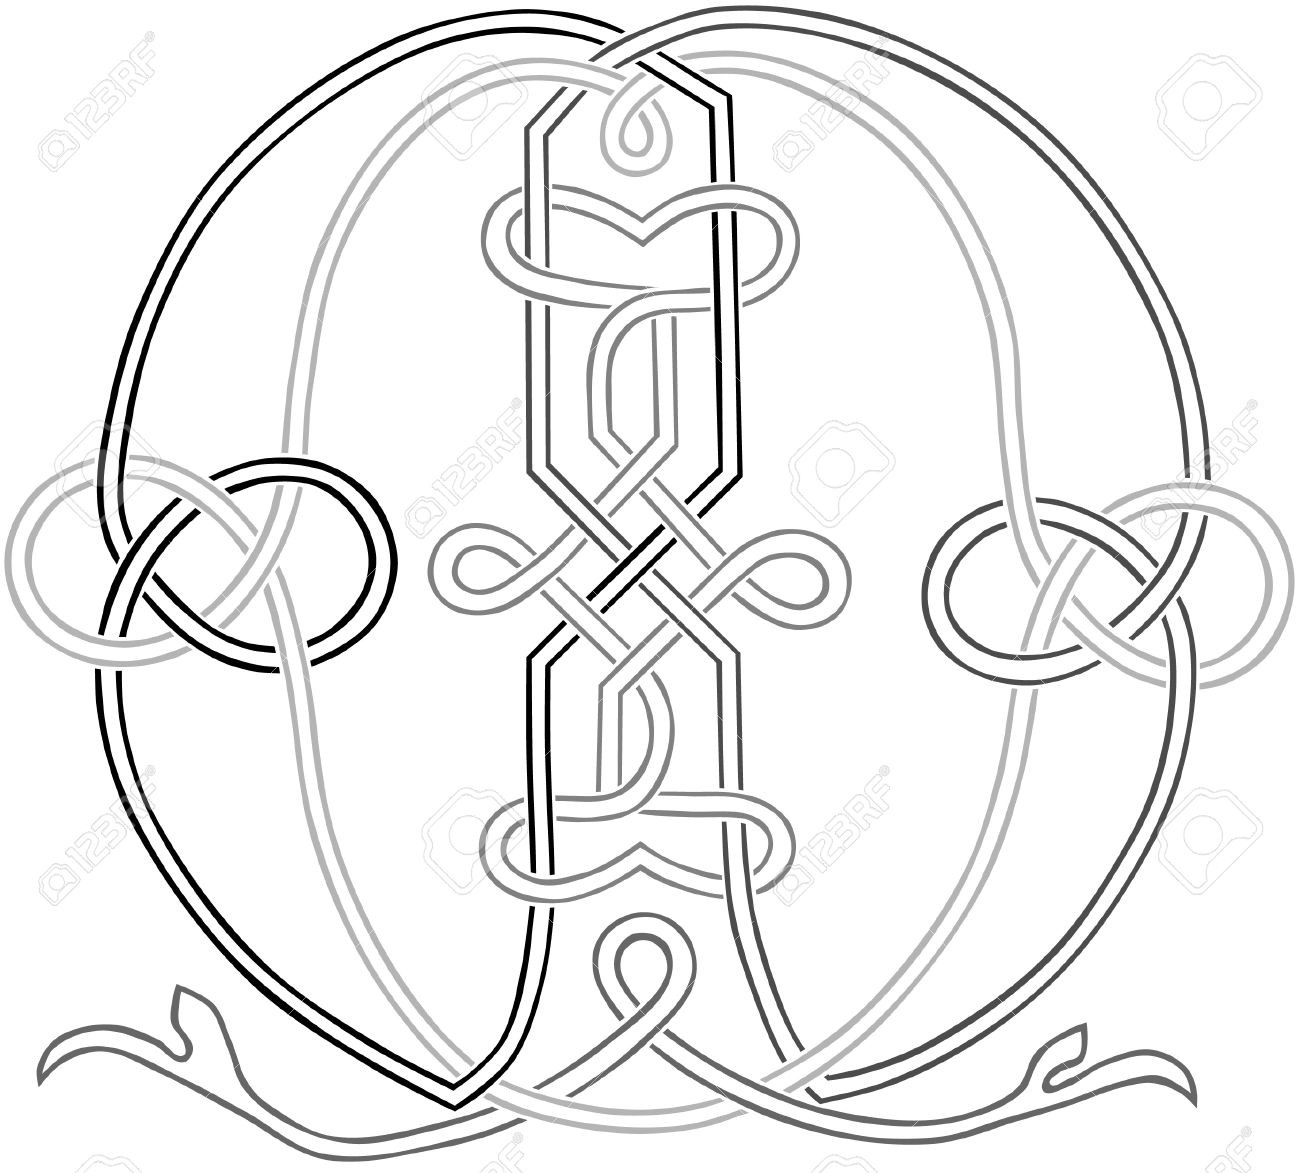 A Celtic Knot Work Capital Letter M Stylized Outline Stock Vector